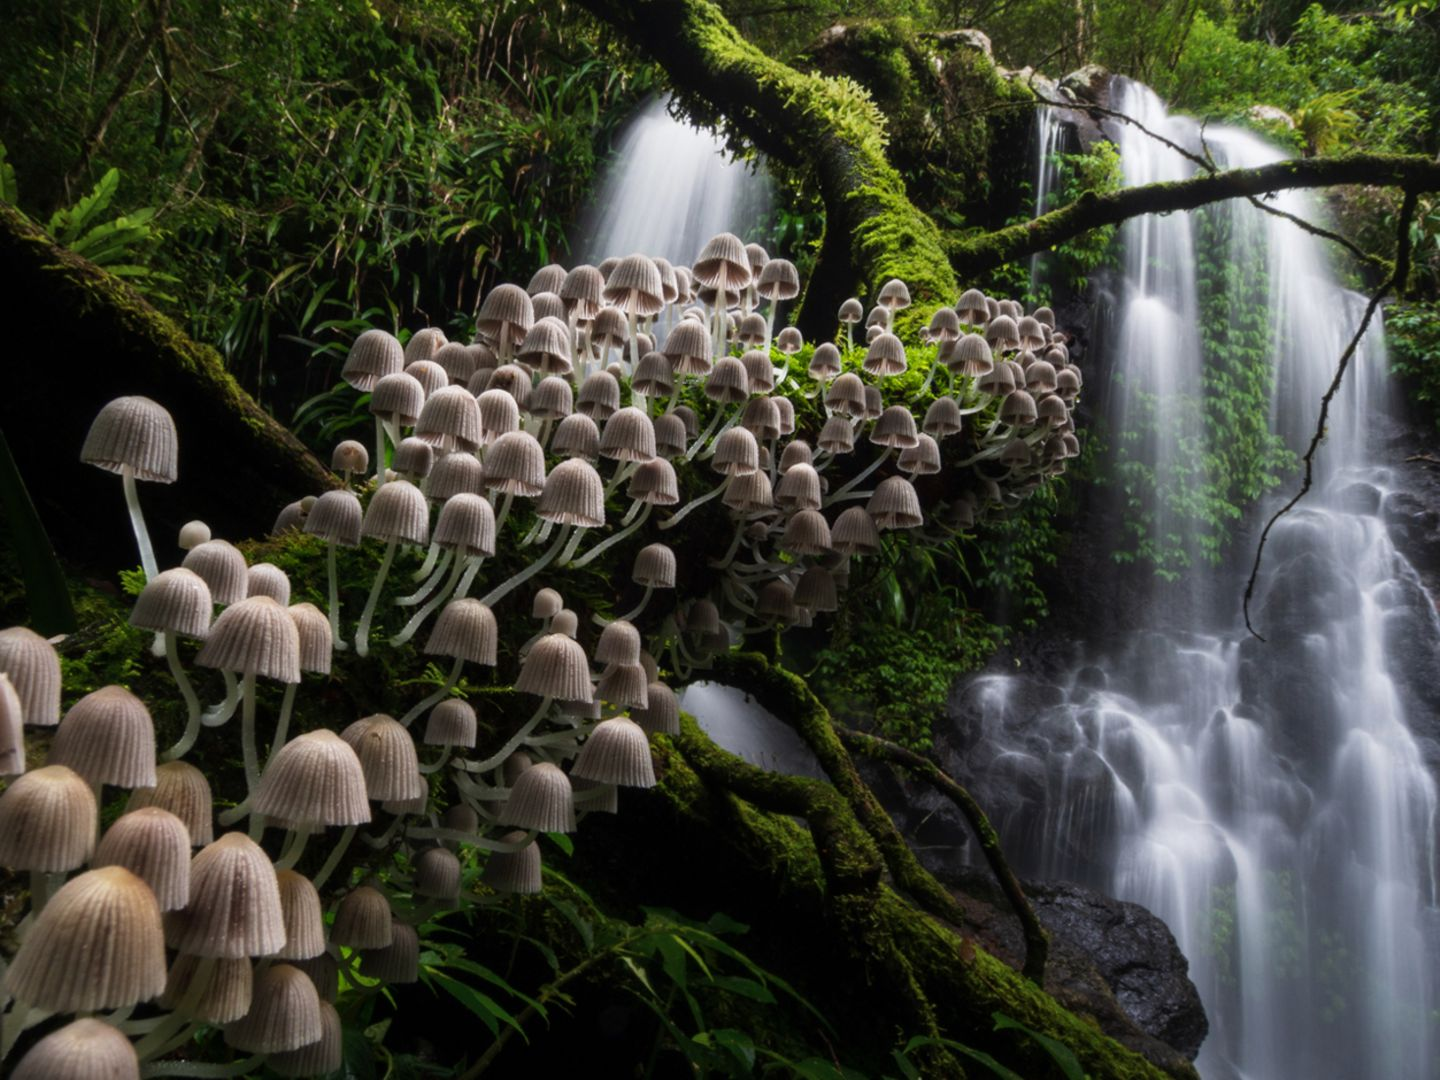 Kevin De Vree/Nature Photographer of the Year